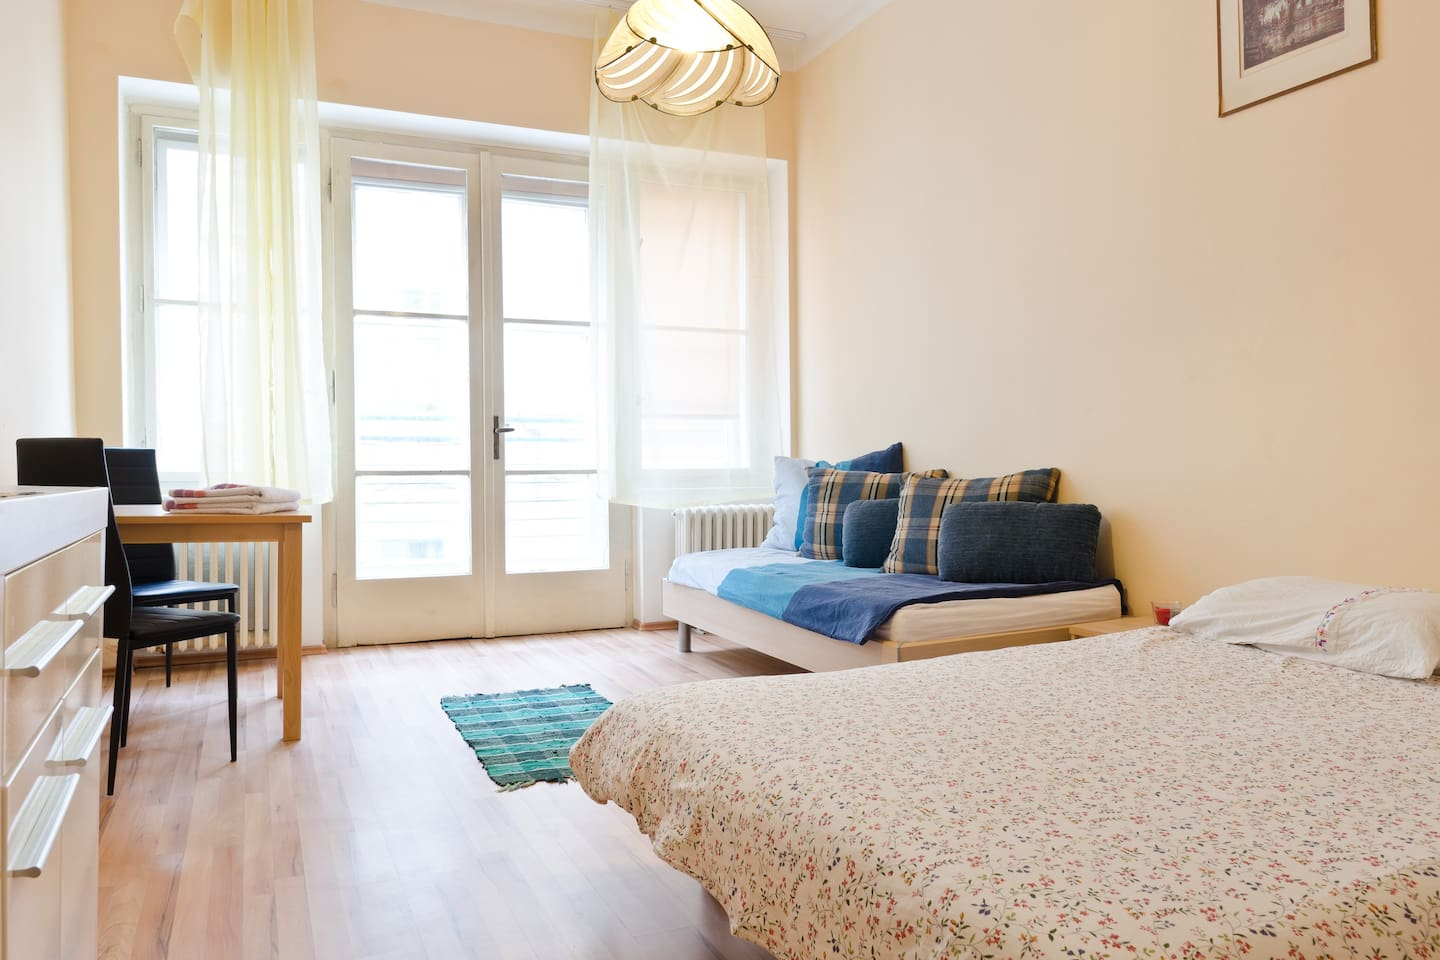 This is it!  The most private room in a 3 bedroom apartment located in the heart of Prague, between Old Town Square and Namesti Republiky. Have your own keys, walk everywhere, and make yourself at home in this fully-equipped, stocked and clean apartment.